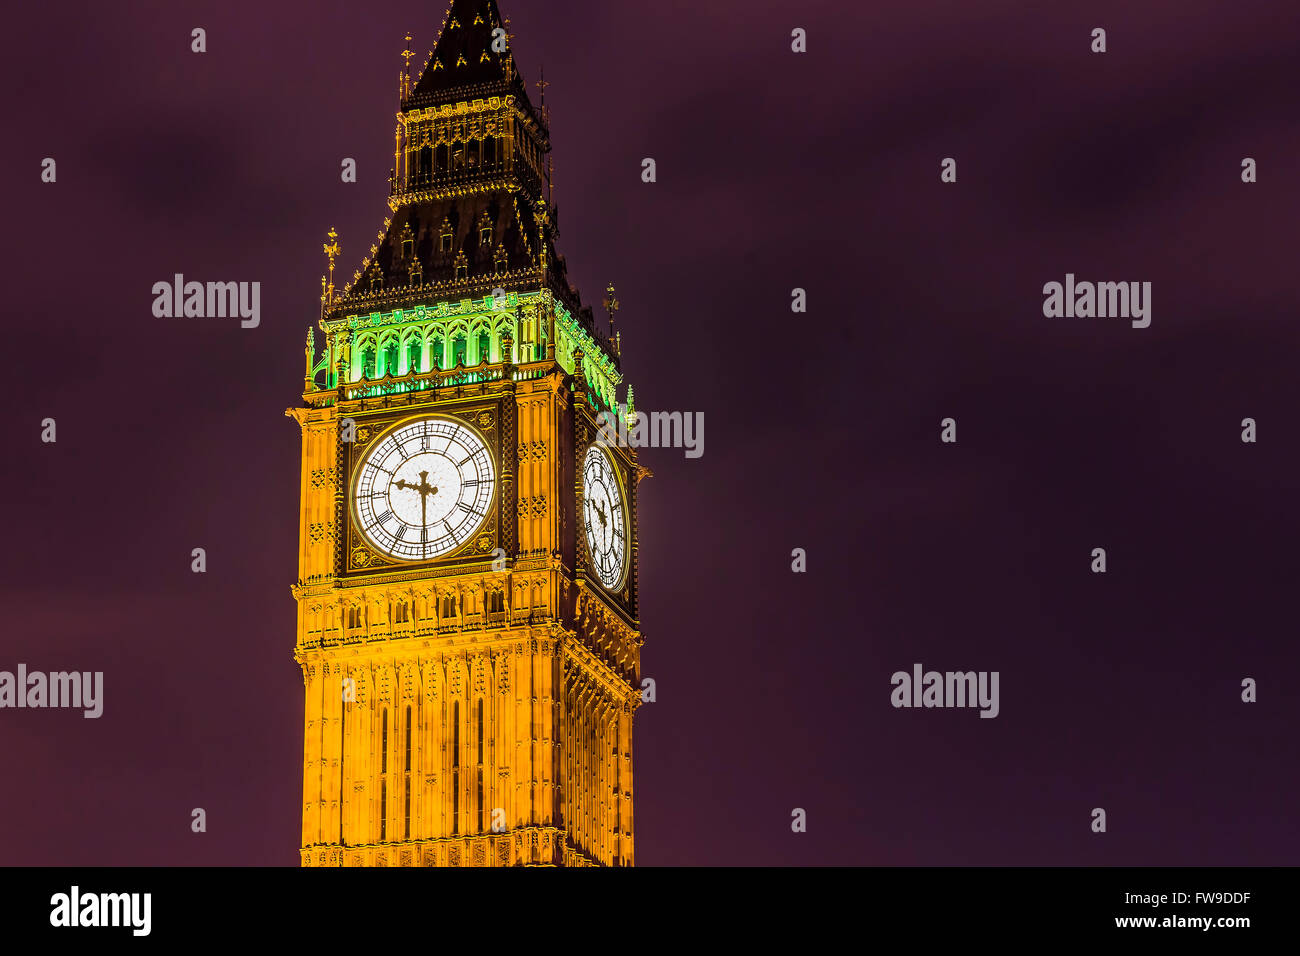 Elizabeth Tower's clock and Big Ben by night on a purple sky. - Stock Image